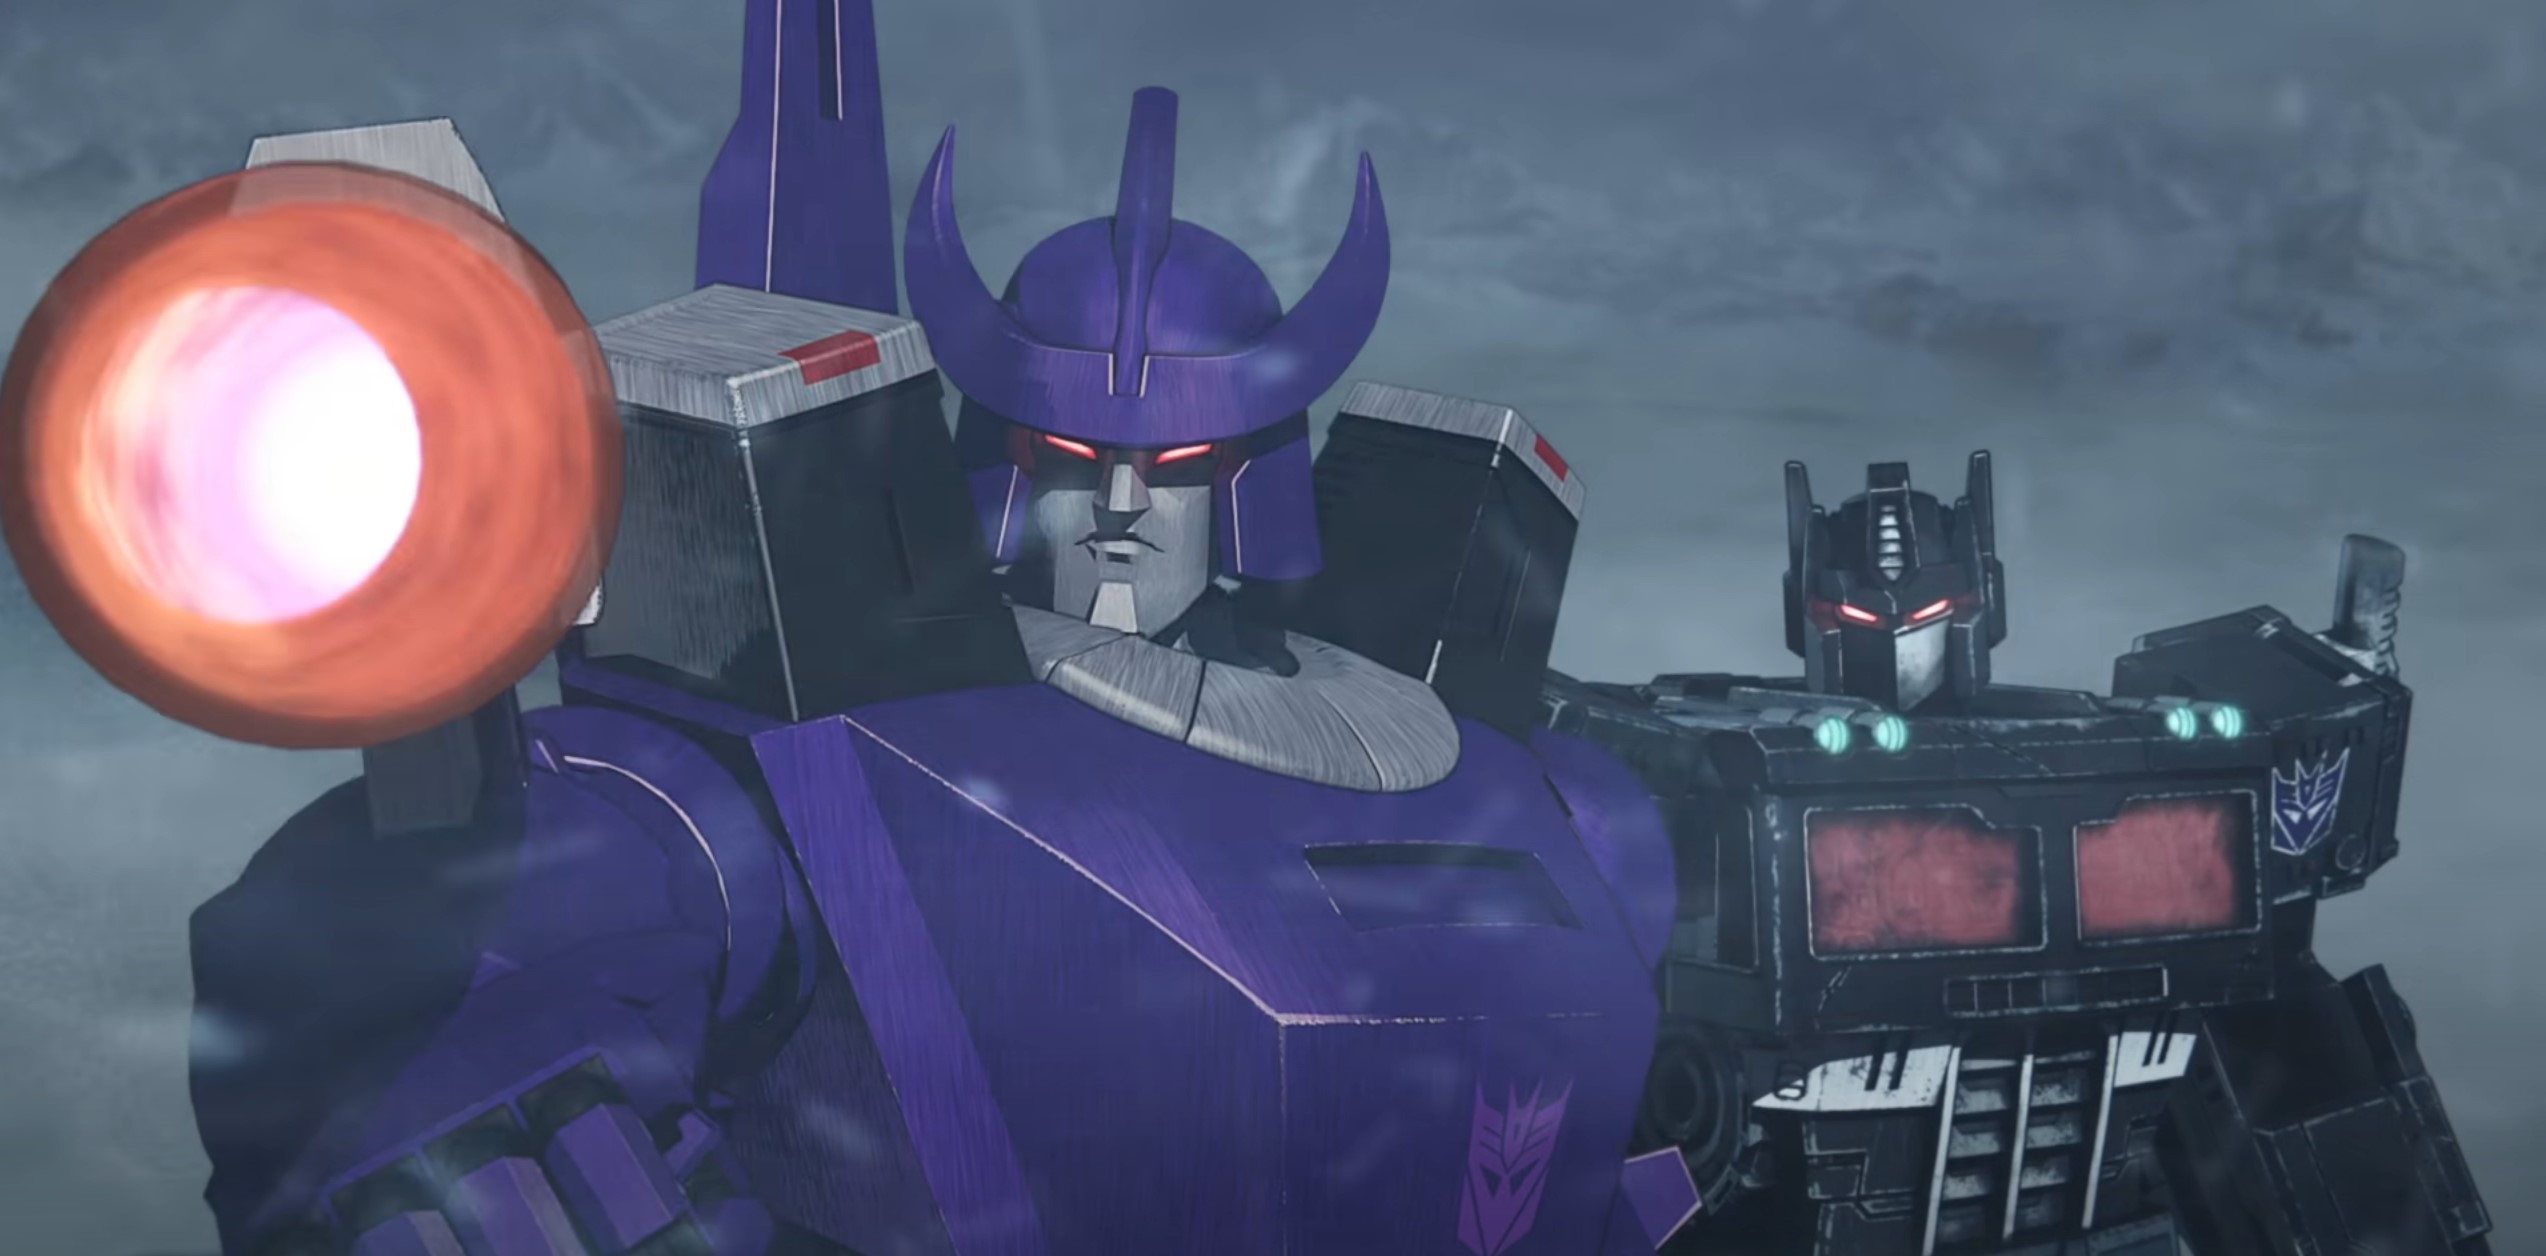 WOO! Transformers: War For Cybertron Season 3 is Coming to Netflix this Week!